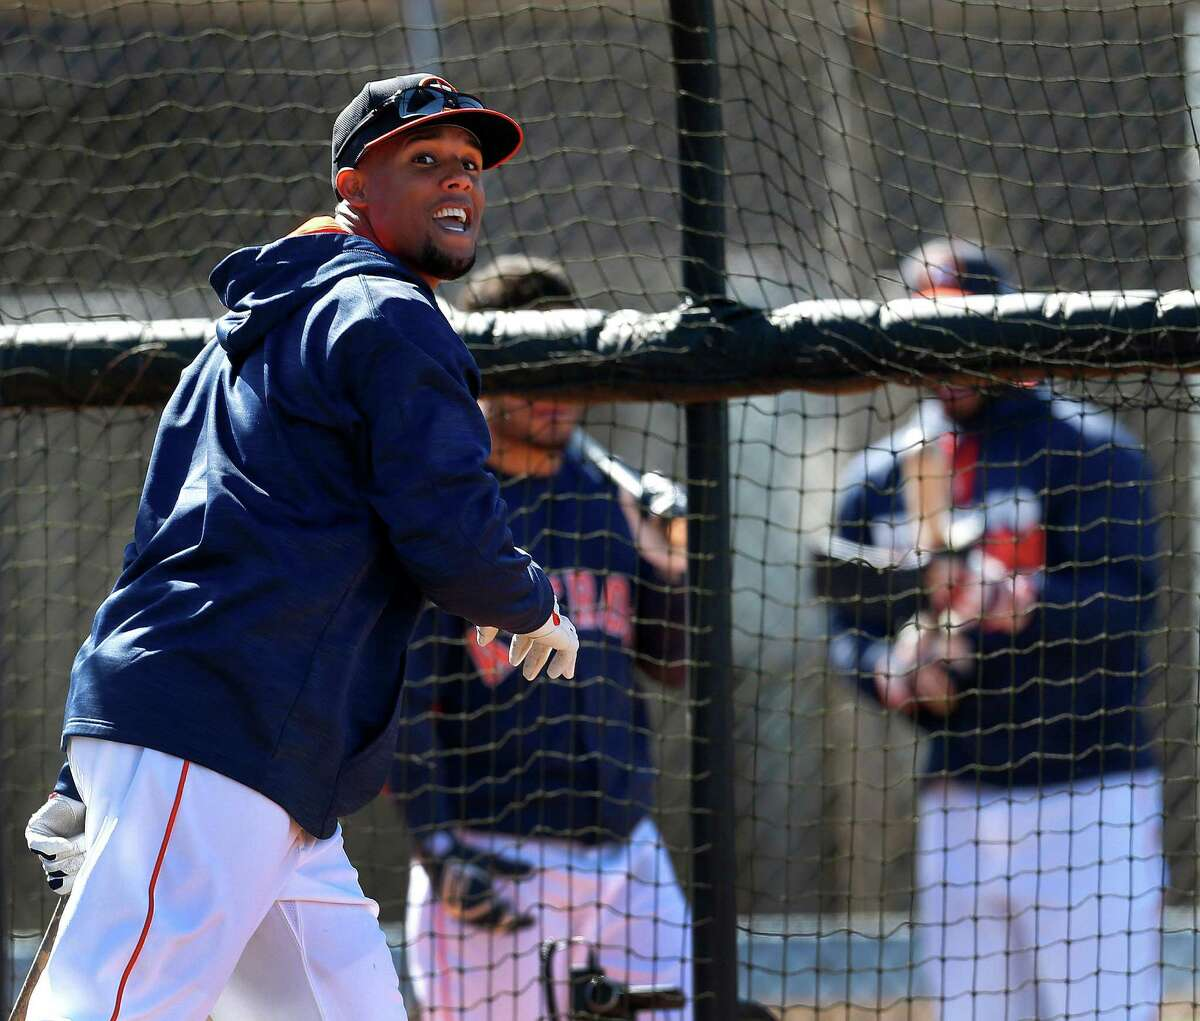 Astros center fielder Carlos Gomez isn't about to let his fun stop at the batting cage.